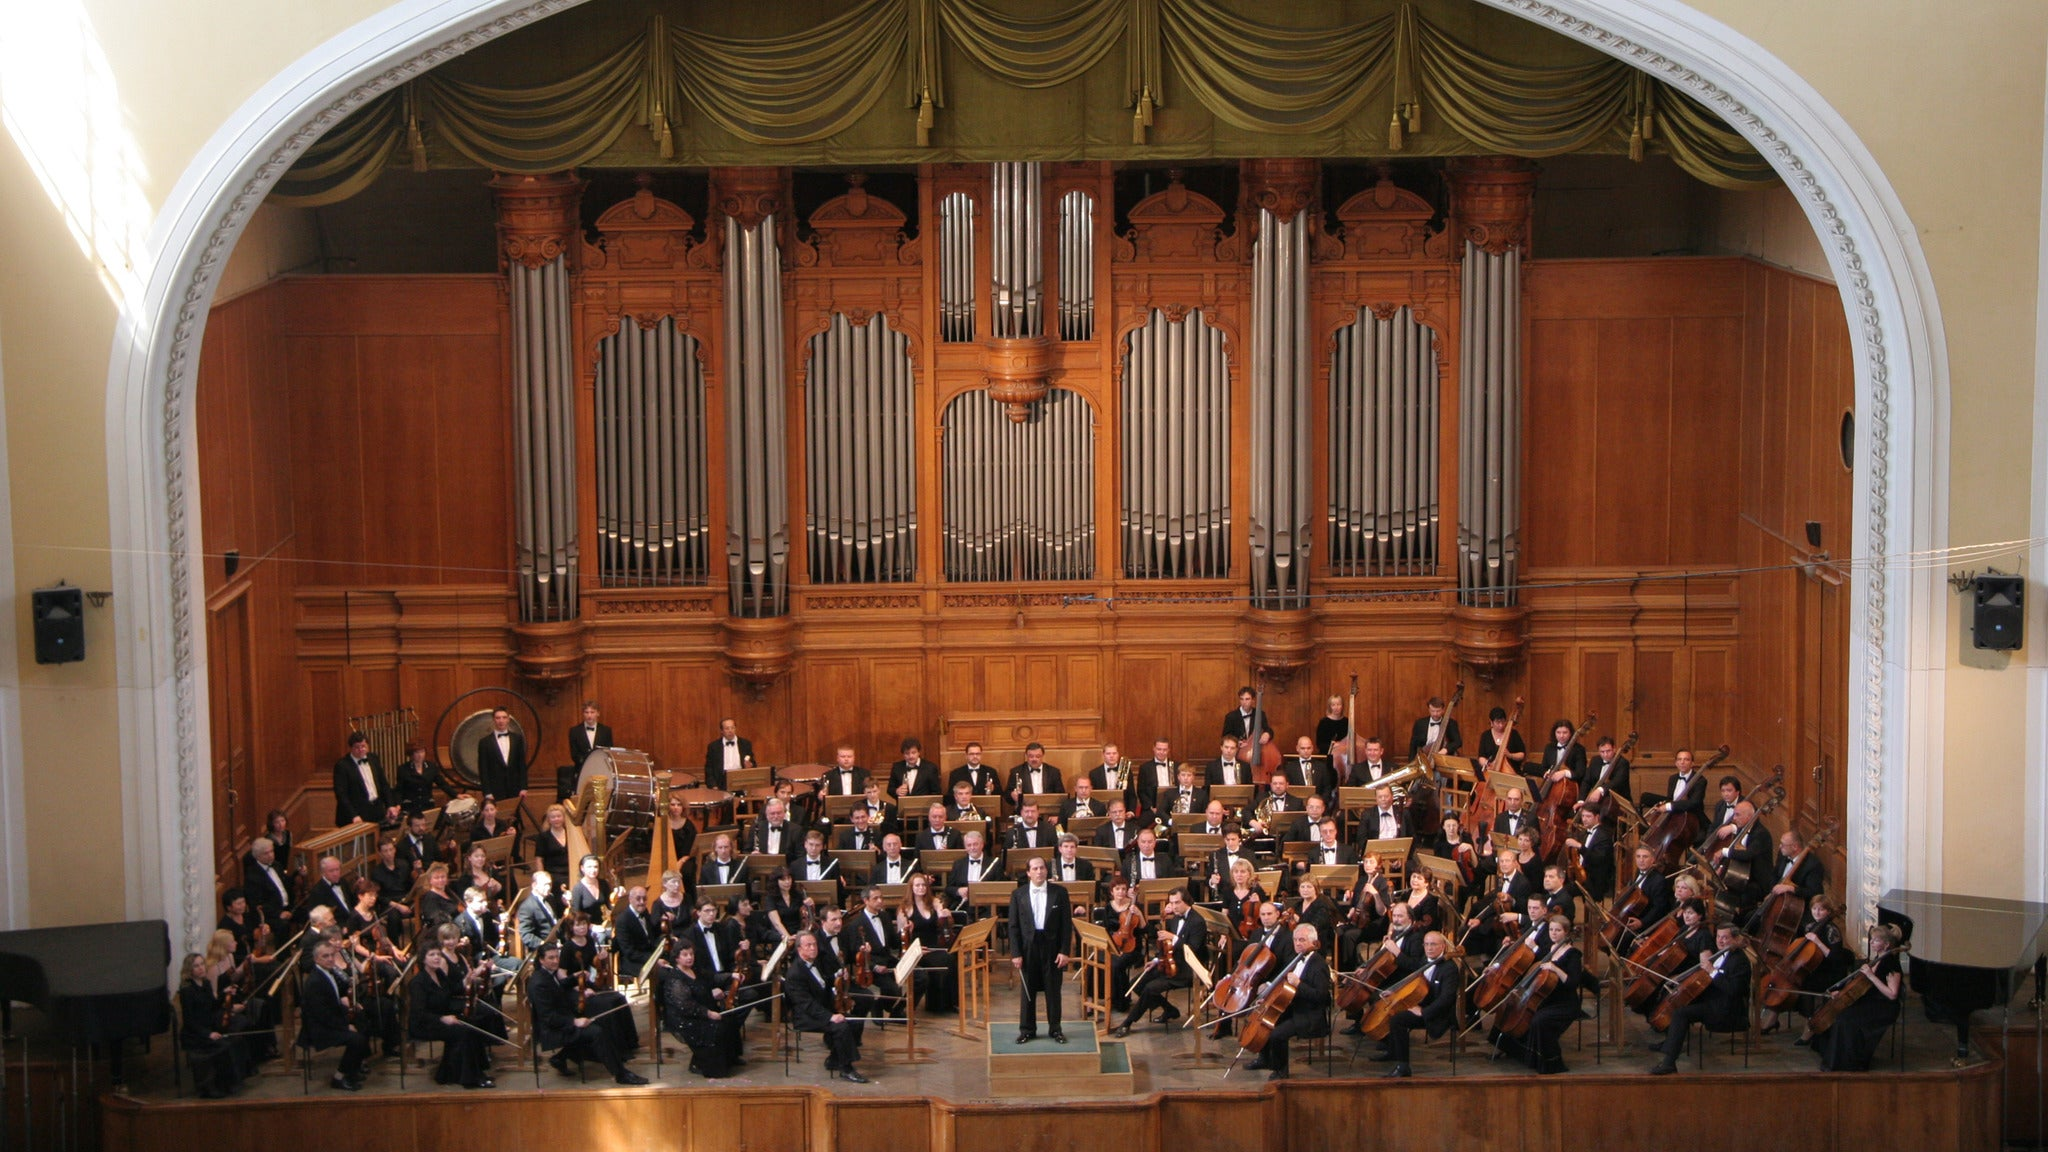 Moscow State Symphony Orchestra - Northridge, CA 91330